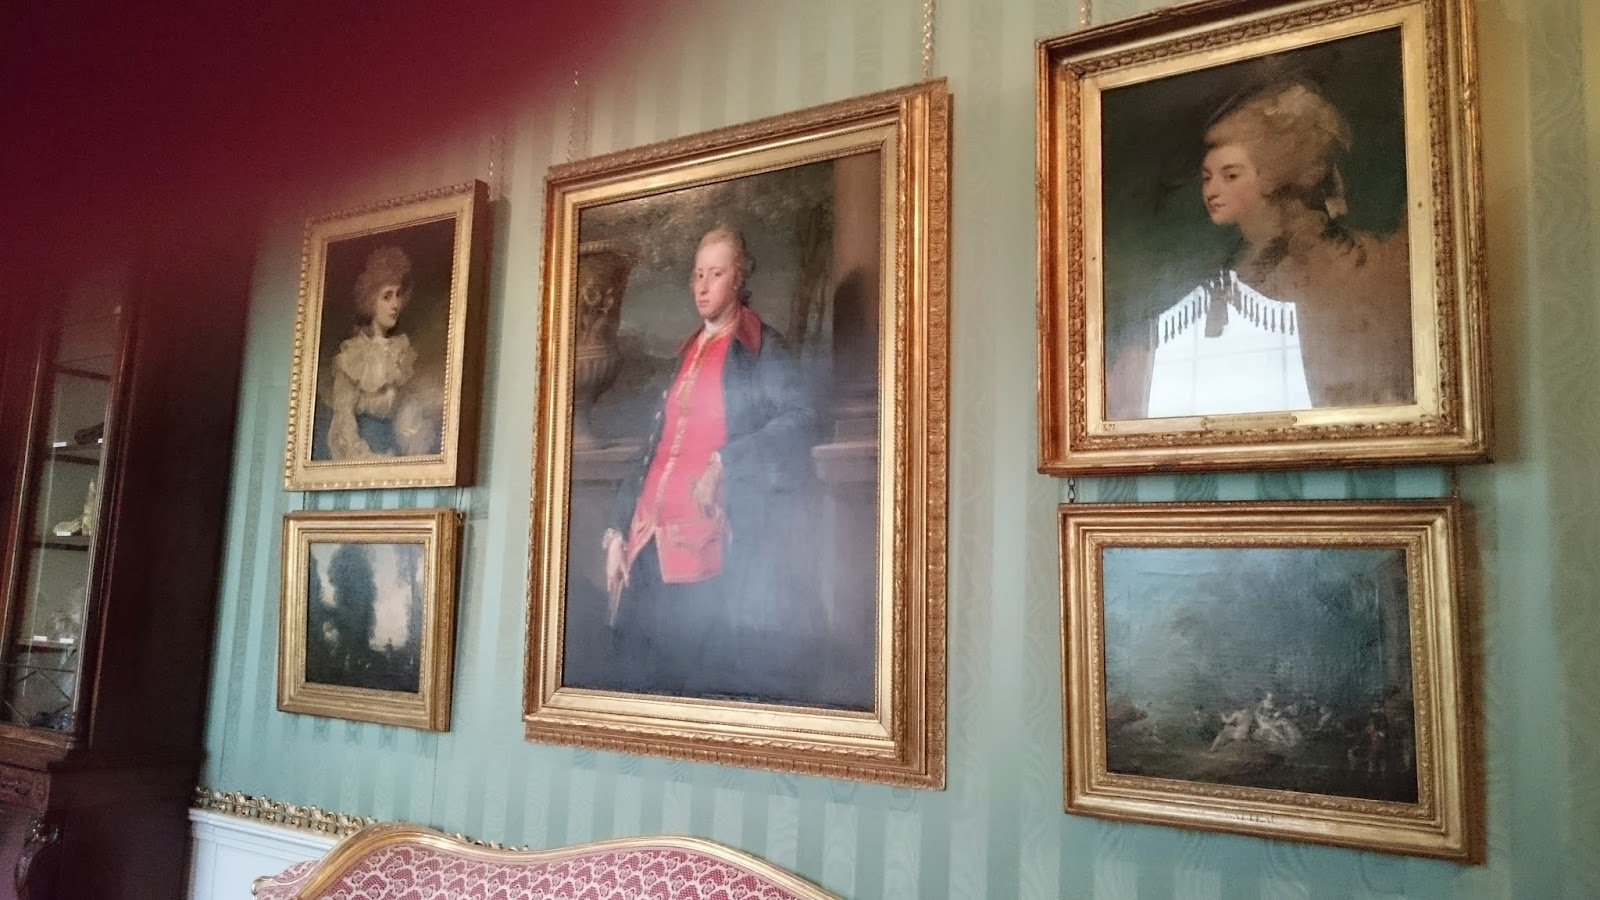 Portraits of the 5th Duke and his two wives, on the right, Lady Georgiana Spencer, and on the left, Lady Elizabeth Foster in the South Sketch Gallery, Chatsworth